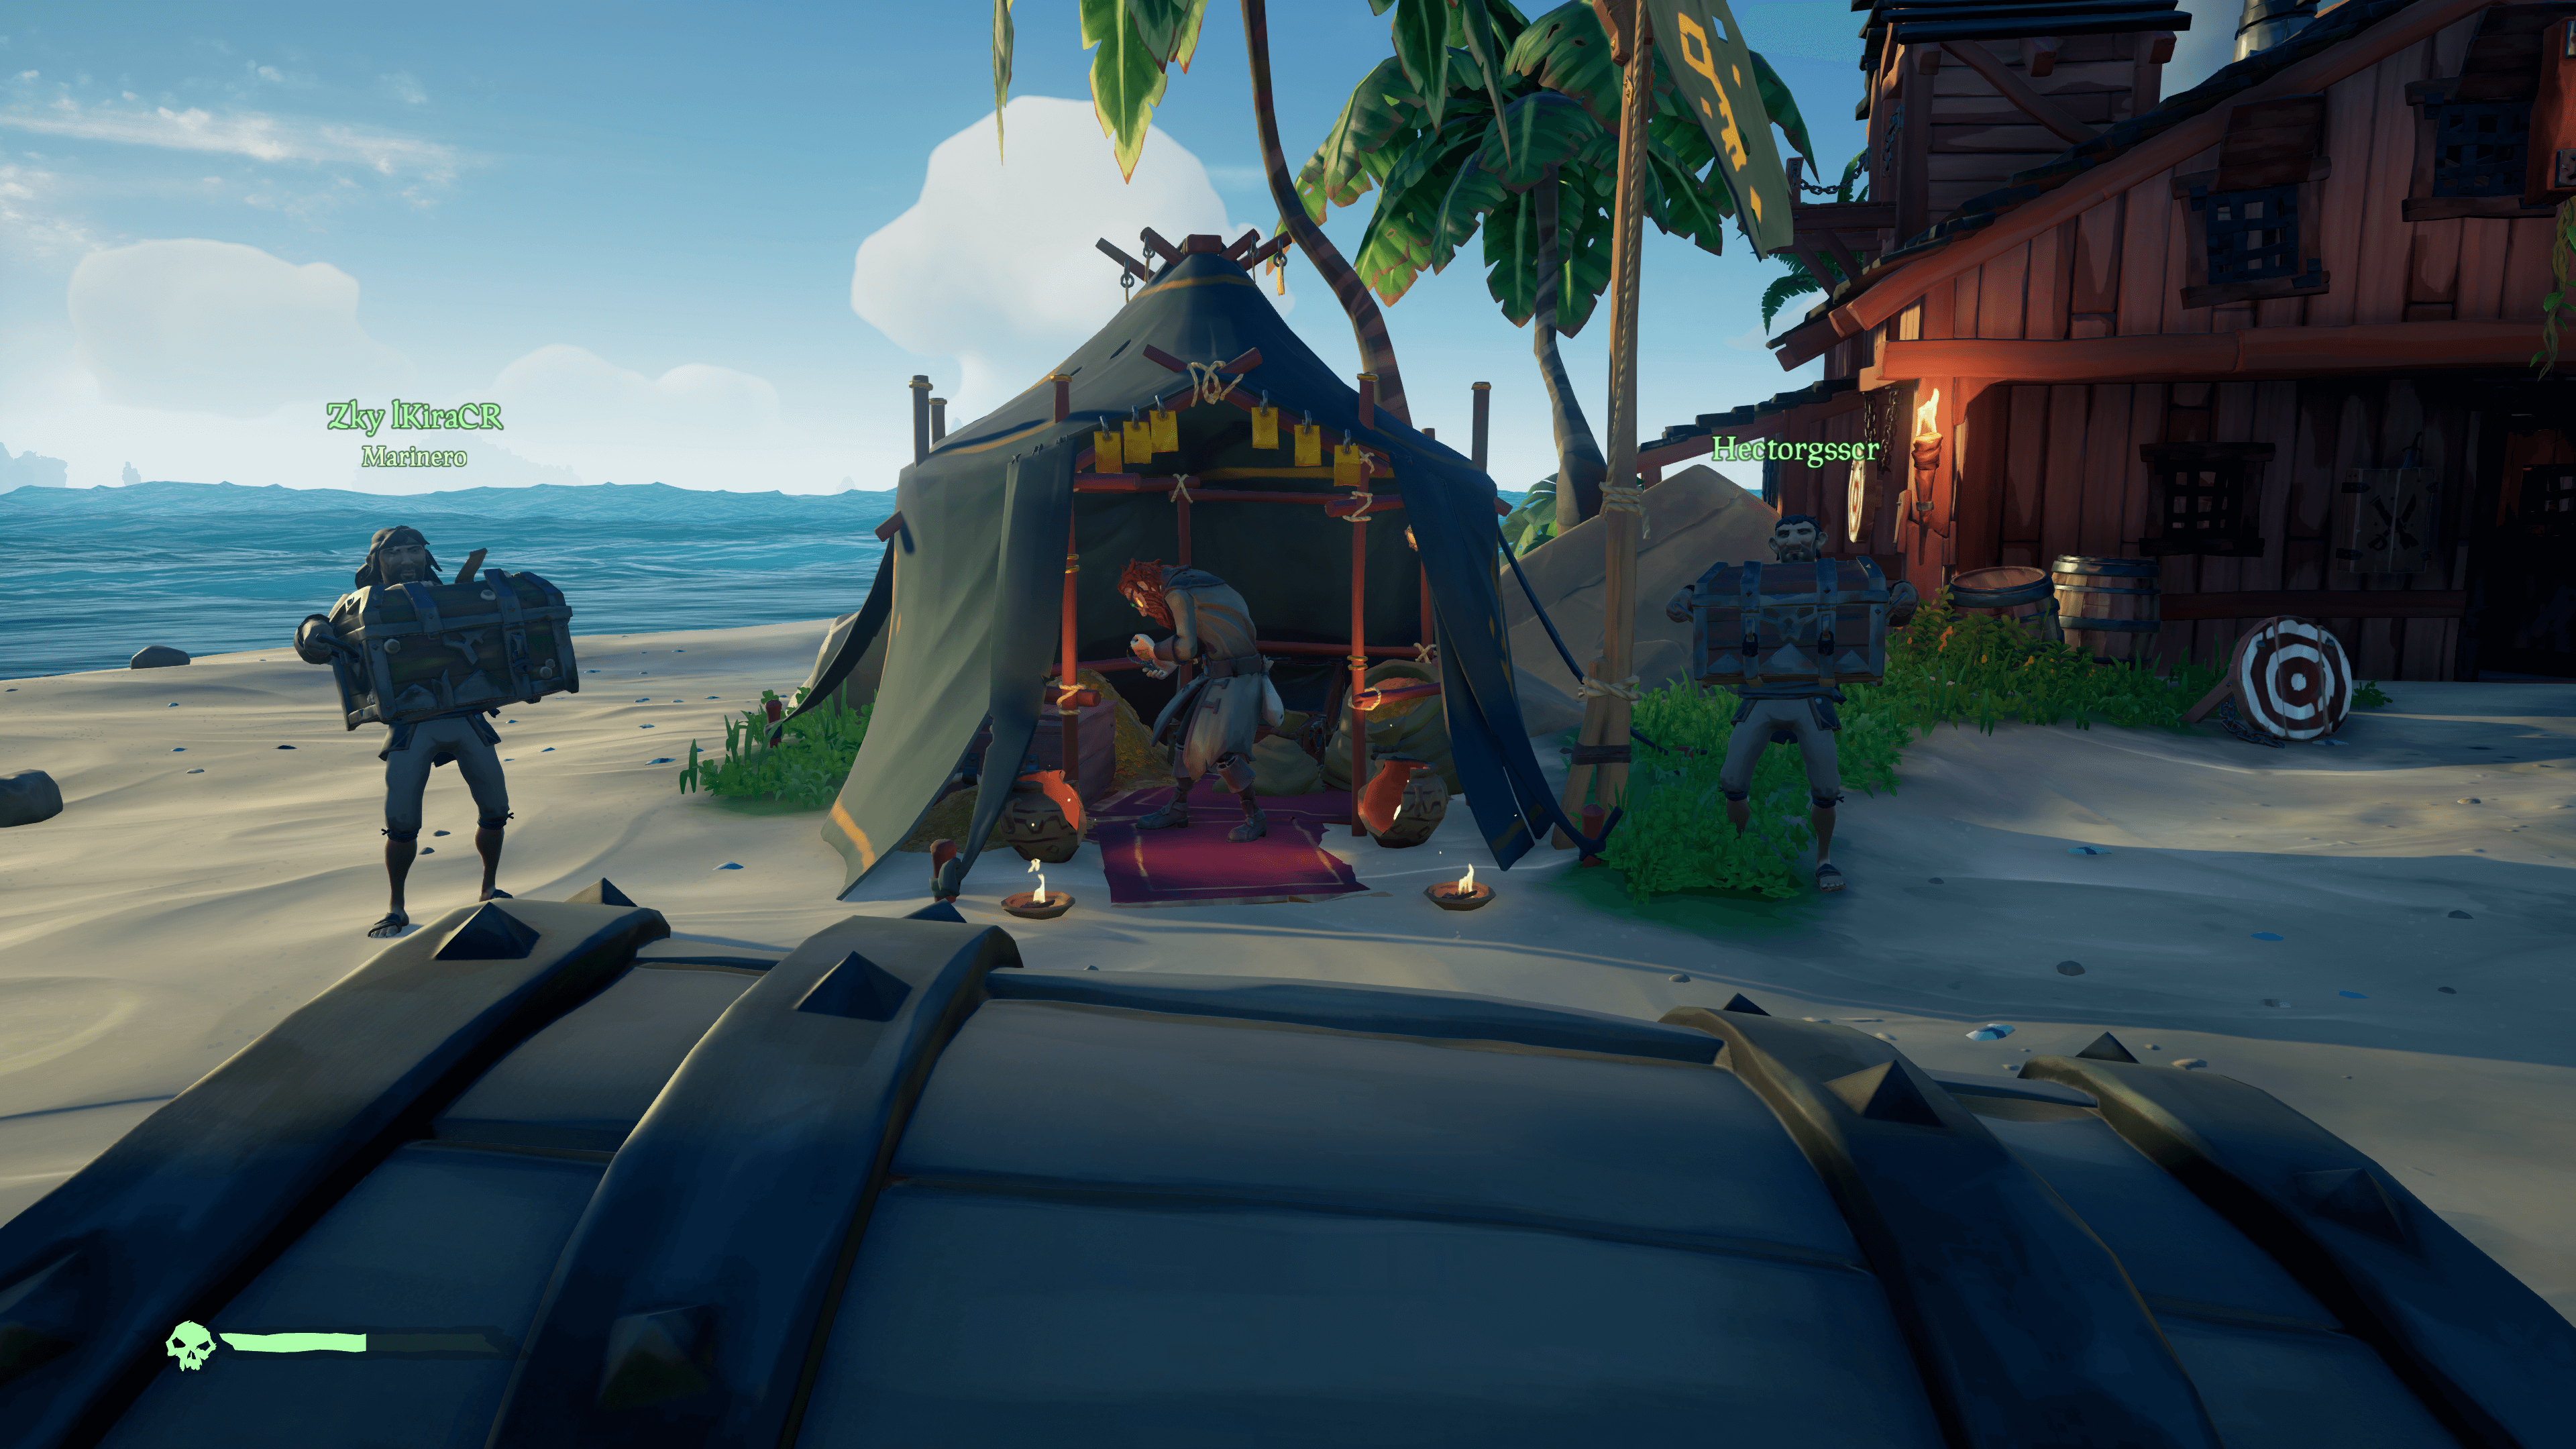 sea of thieves_reputación o personajes de gremios